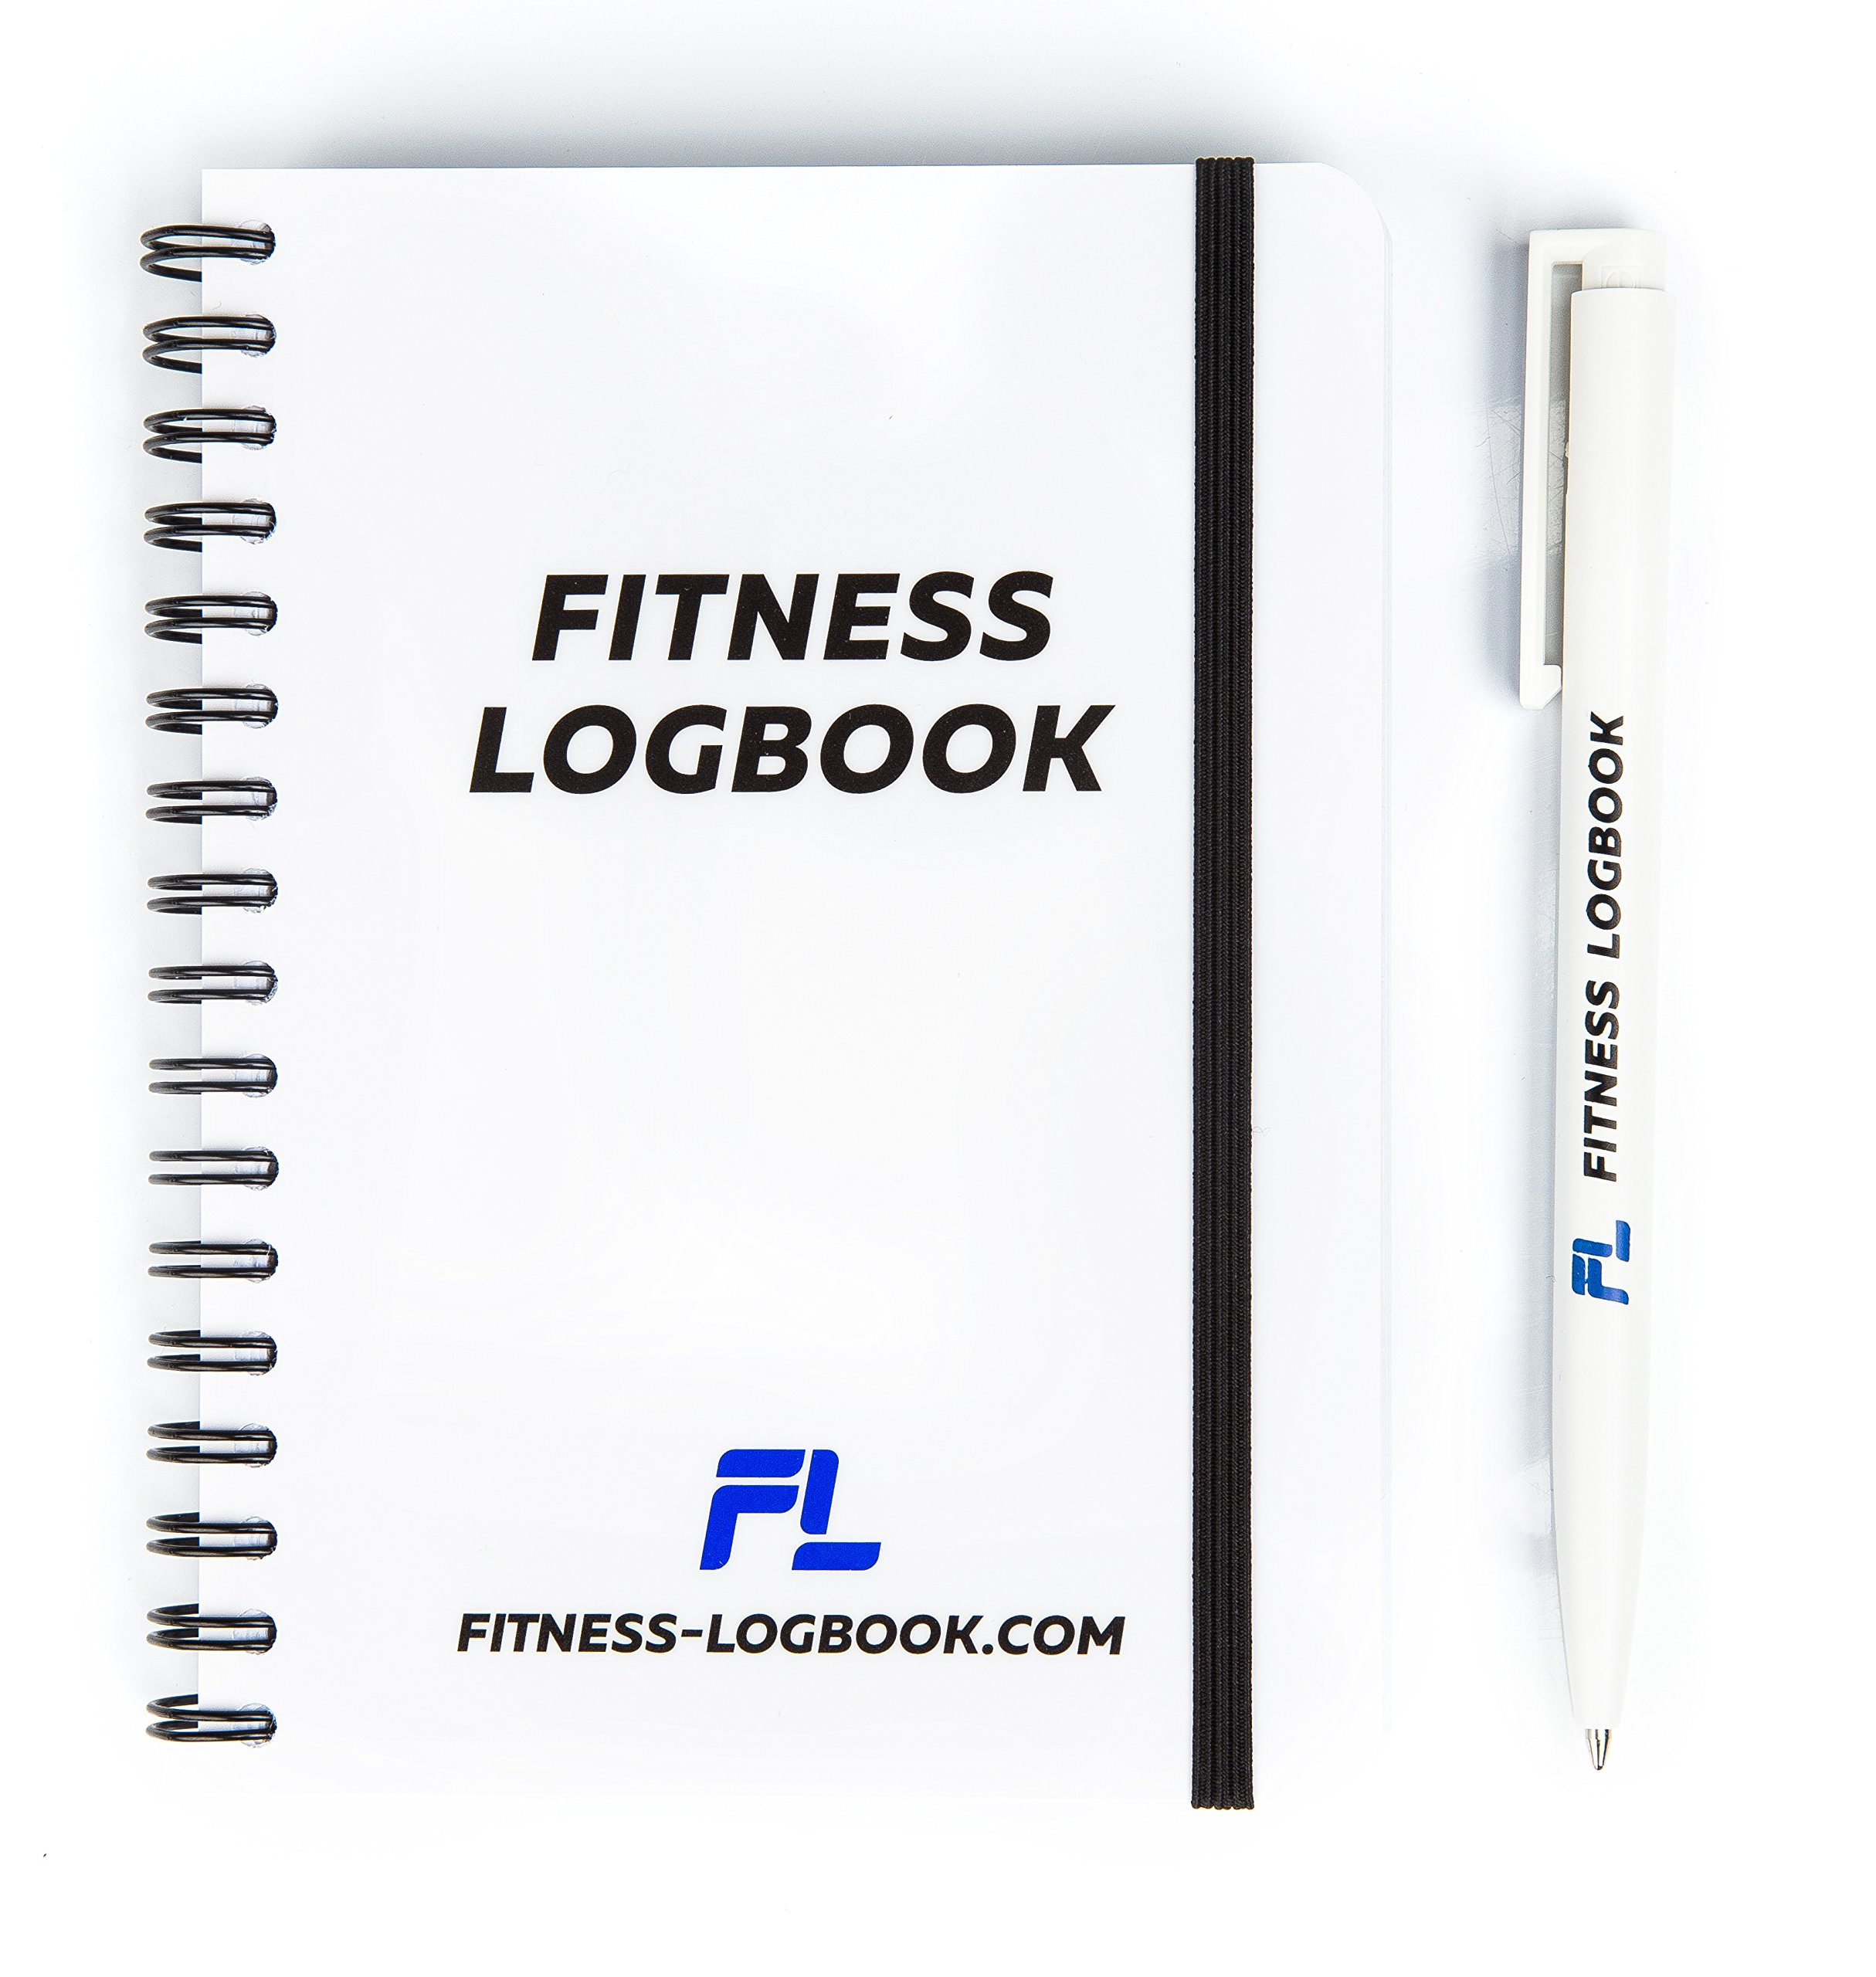 Fitness Logbook: Undated Workout Journal w/ Pen – 4 x 6 inches – 75 Workouts – Thick Paper, Durable Cover, Round Corners, Wire-bound – Stylish And Easy-To-Use Gym Log Book